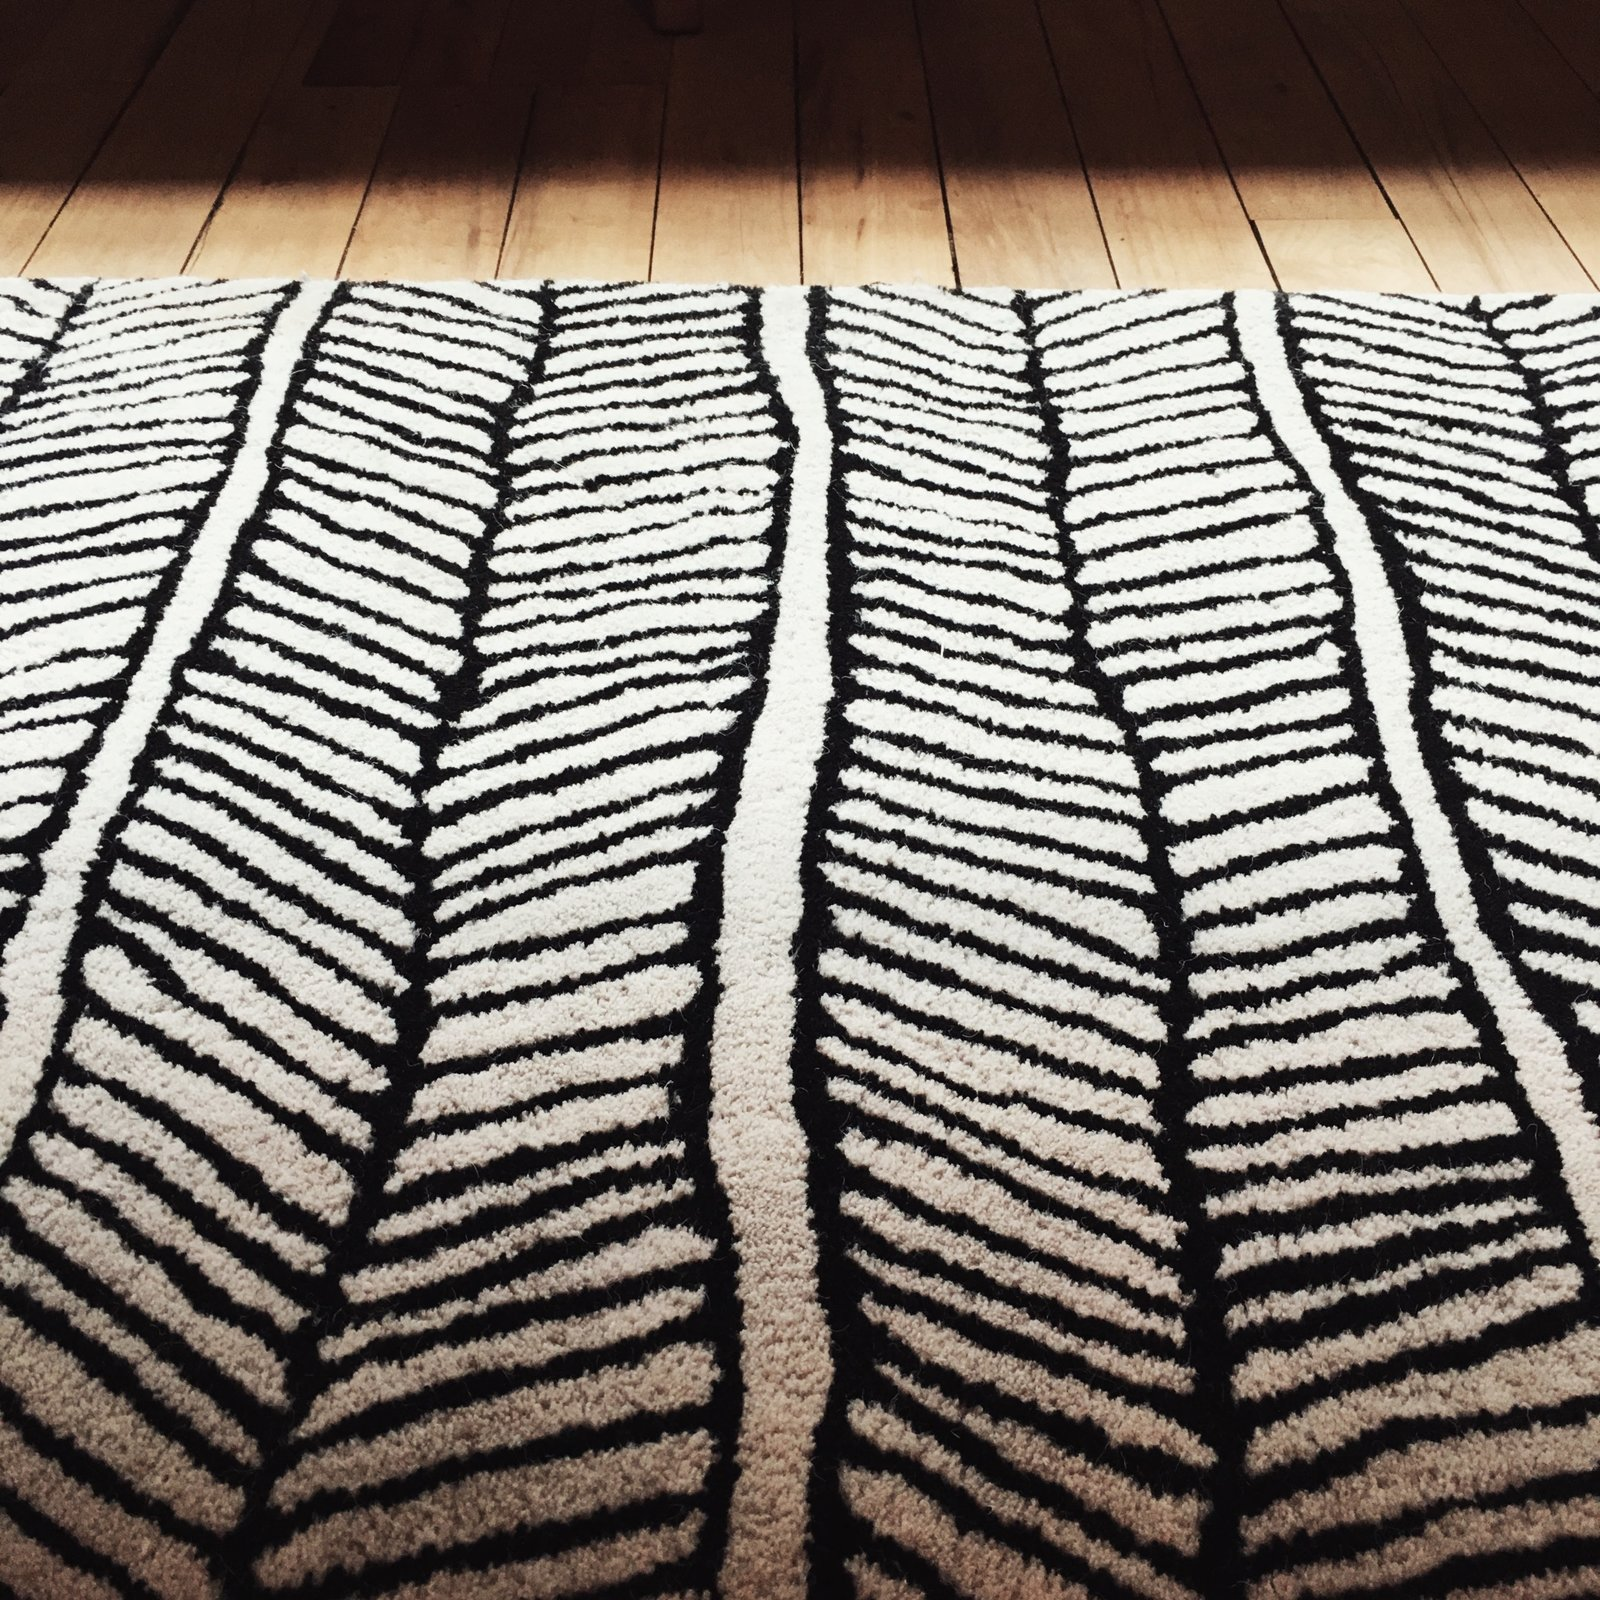 Black and white area rug creates beautiful texture and offsets the warmth of reclaimed wood flooring.